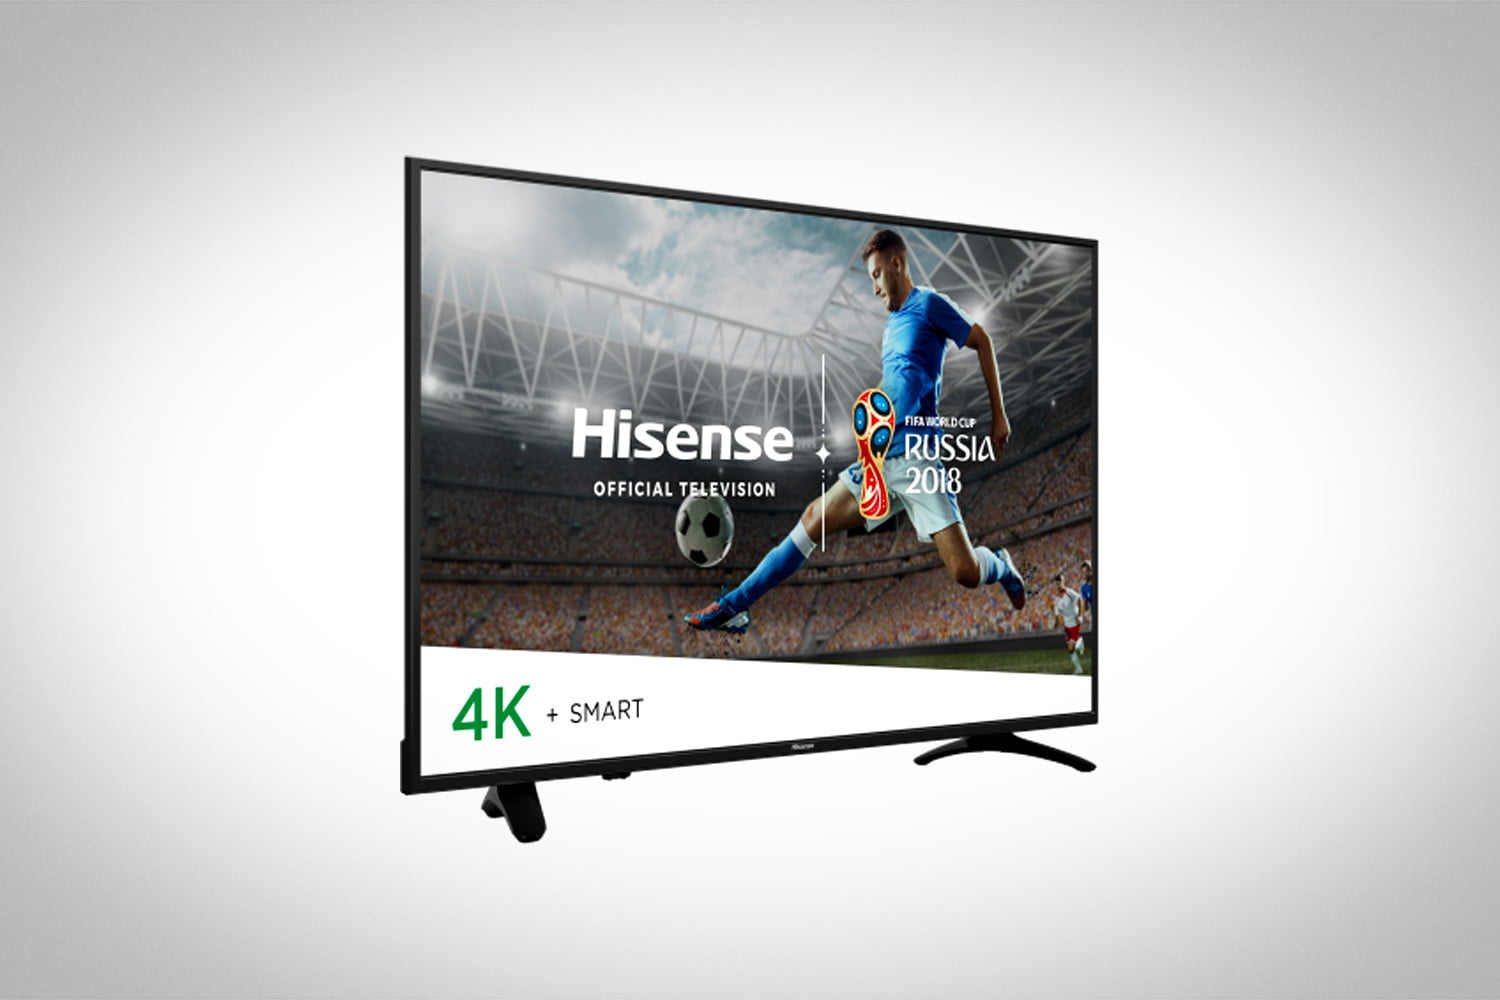 Don't Bother With The Remote: Alexa Controls The New Hisense H8E TV